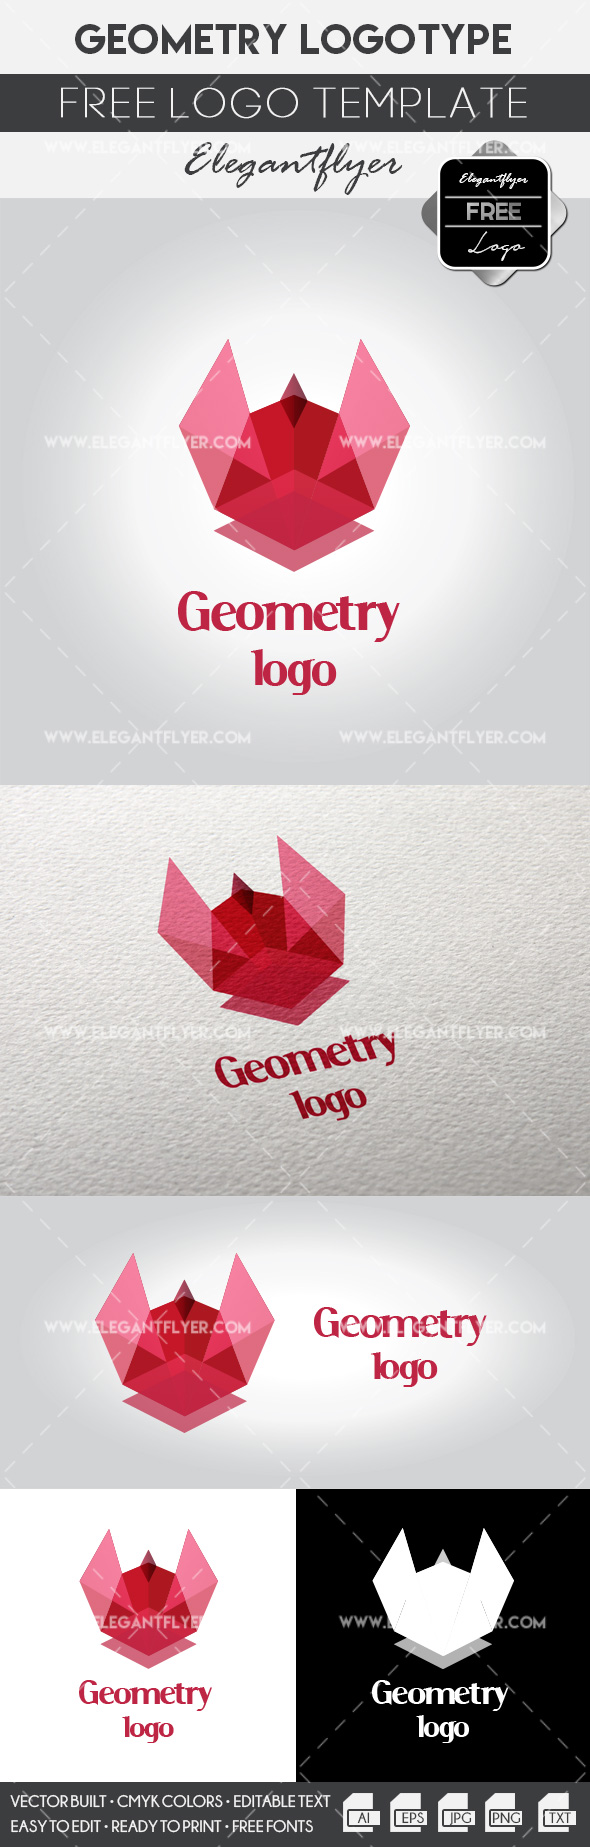 Geometry logo – Free Logo Template